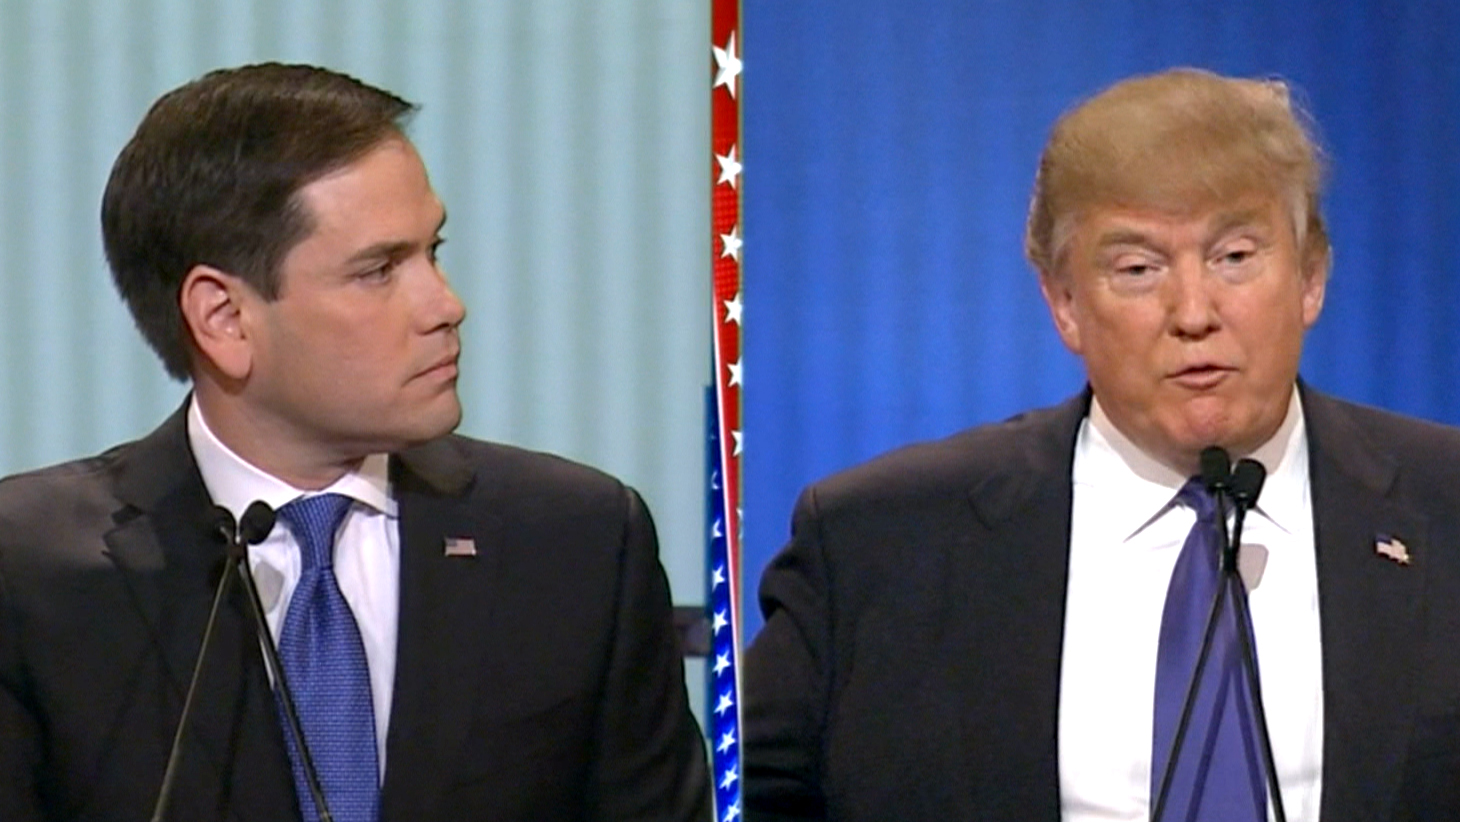 'Little Marco,' Hand Size Are Hot Topics at Debate